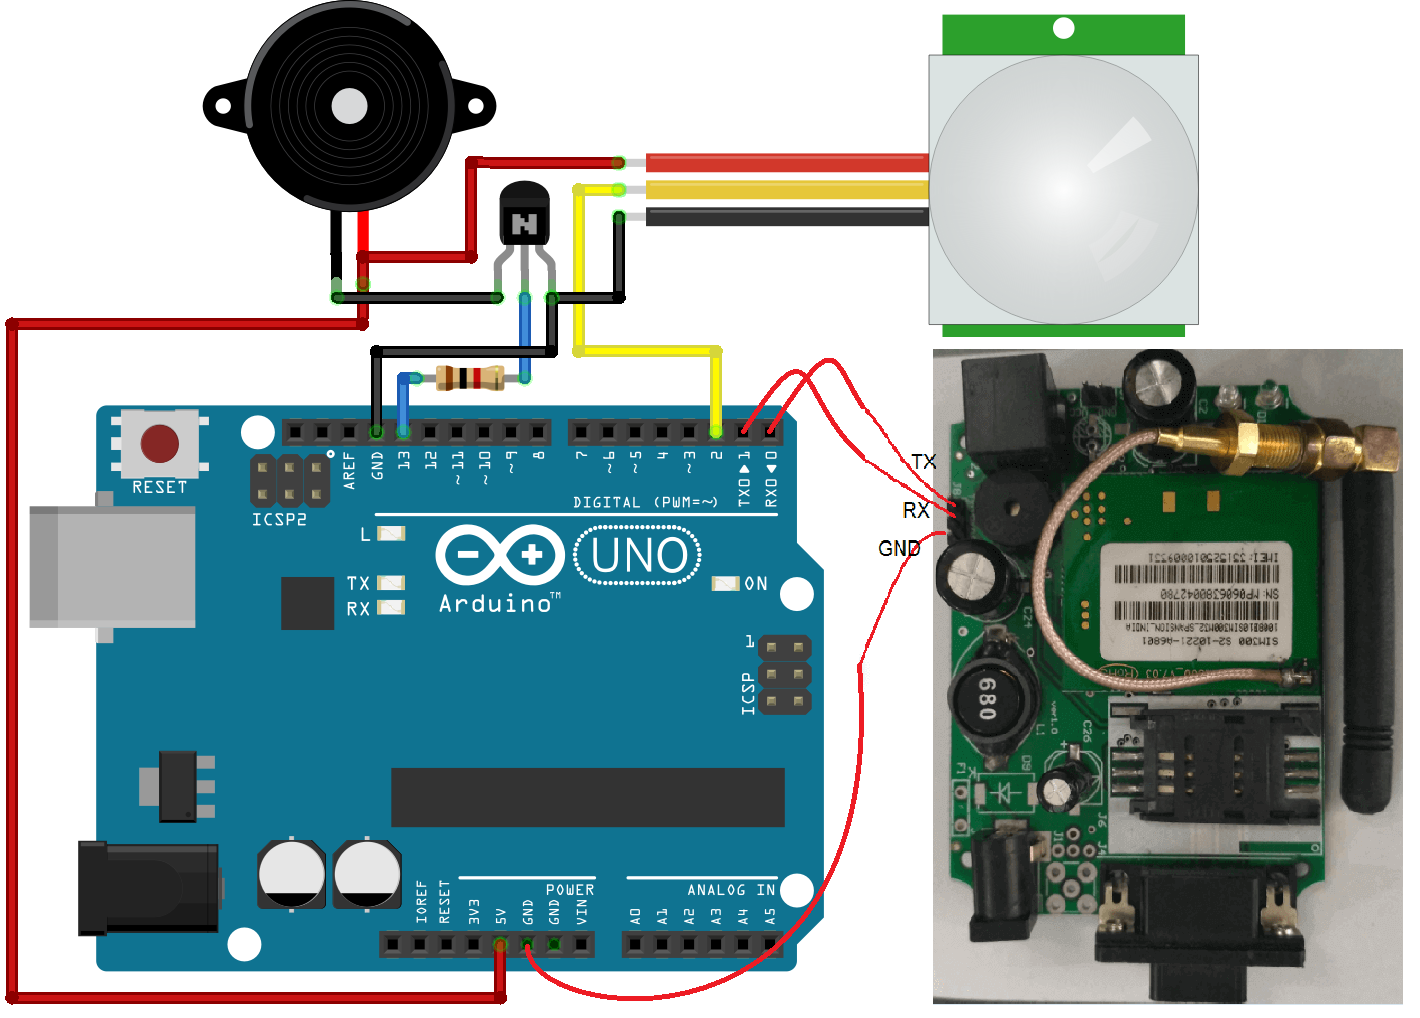 gsm based home security system to detect the trespasser using pirgsm based home security system to detect the trespasser using pir and send sms alert